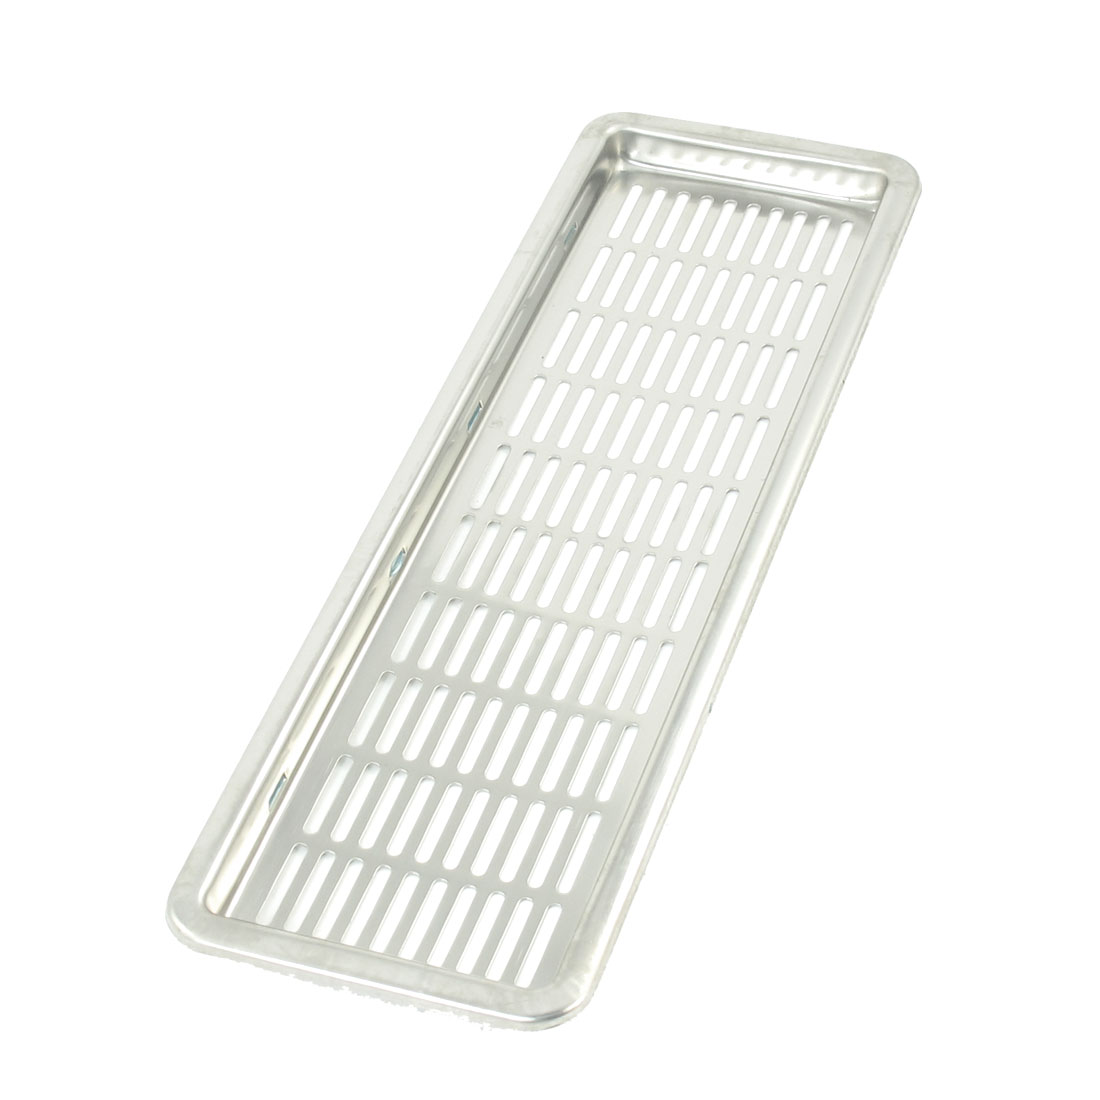 23cm-x-7-2cm-Rectangle-Shape-Portable-Stainless-Steel-Mesh-Hole-Air-Vent-Louver